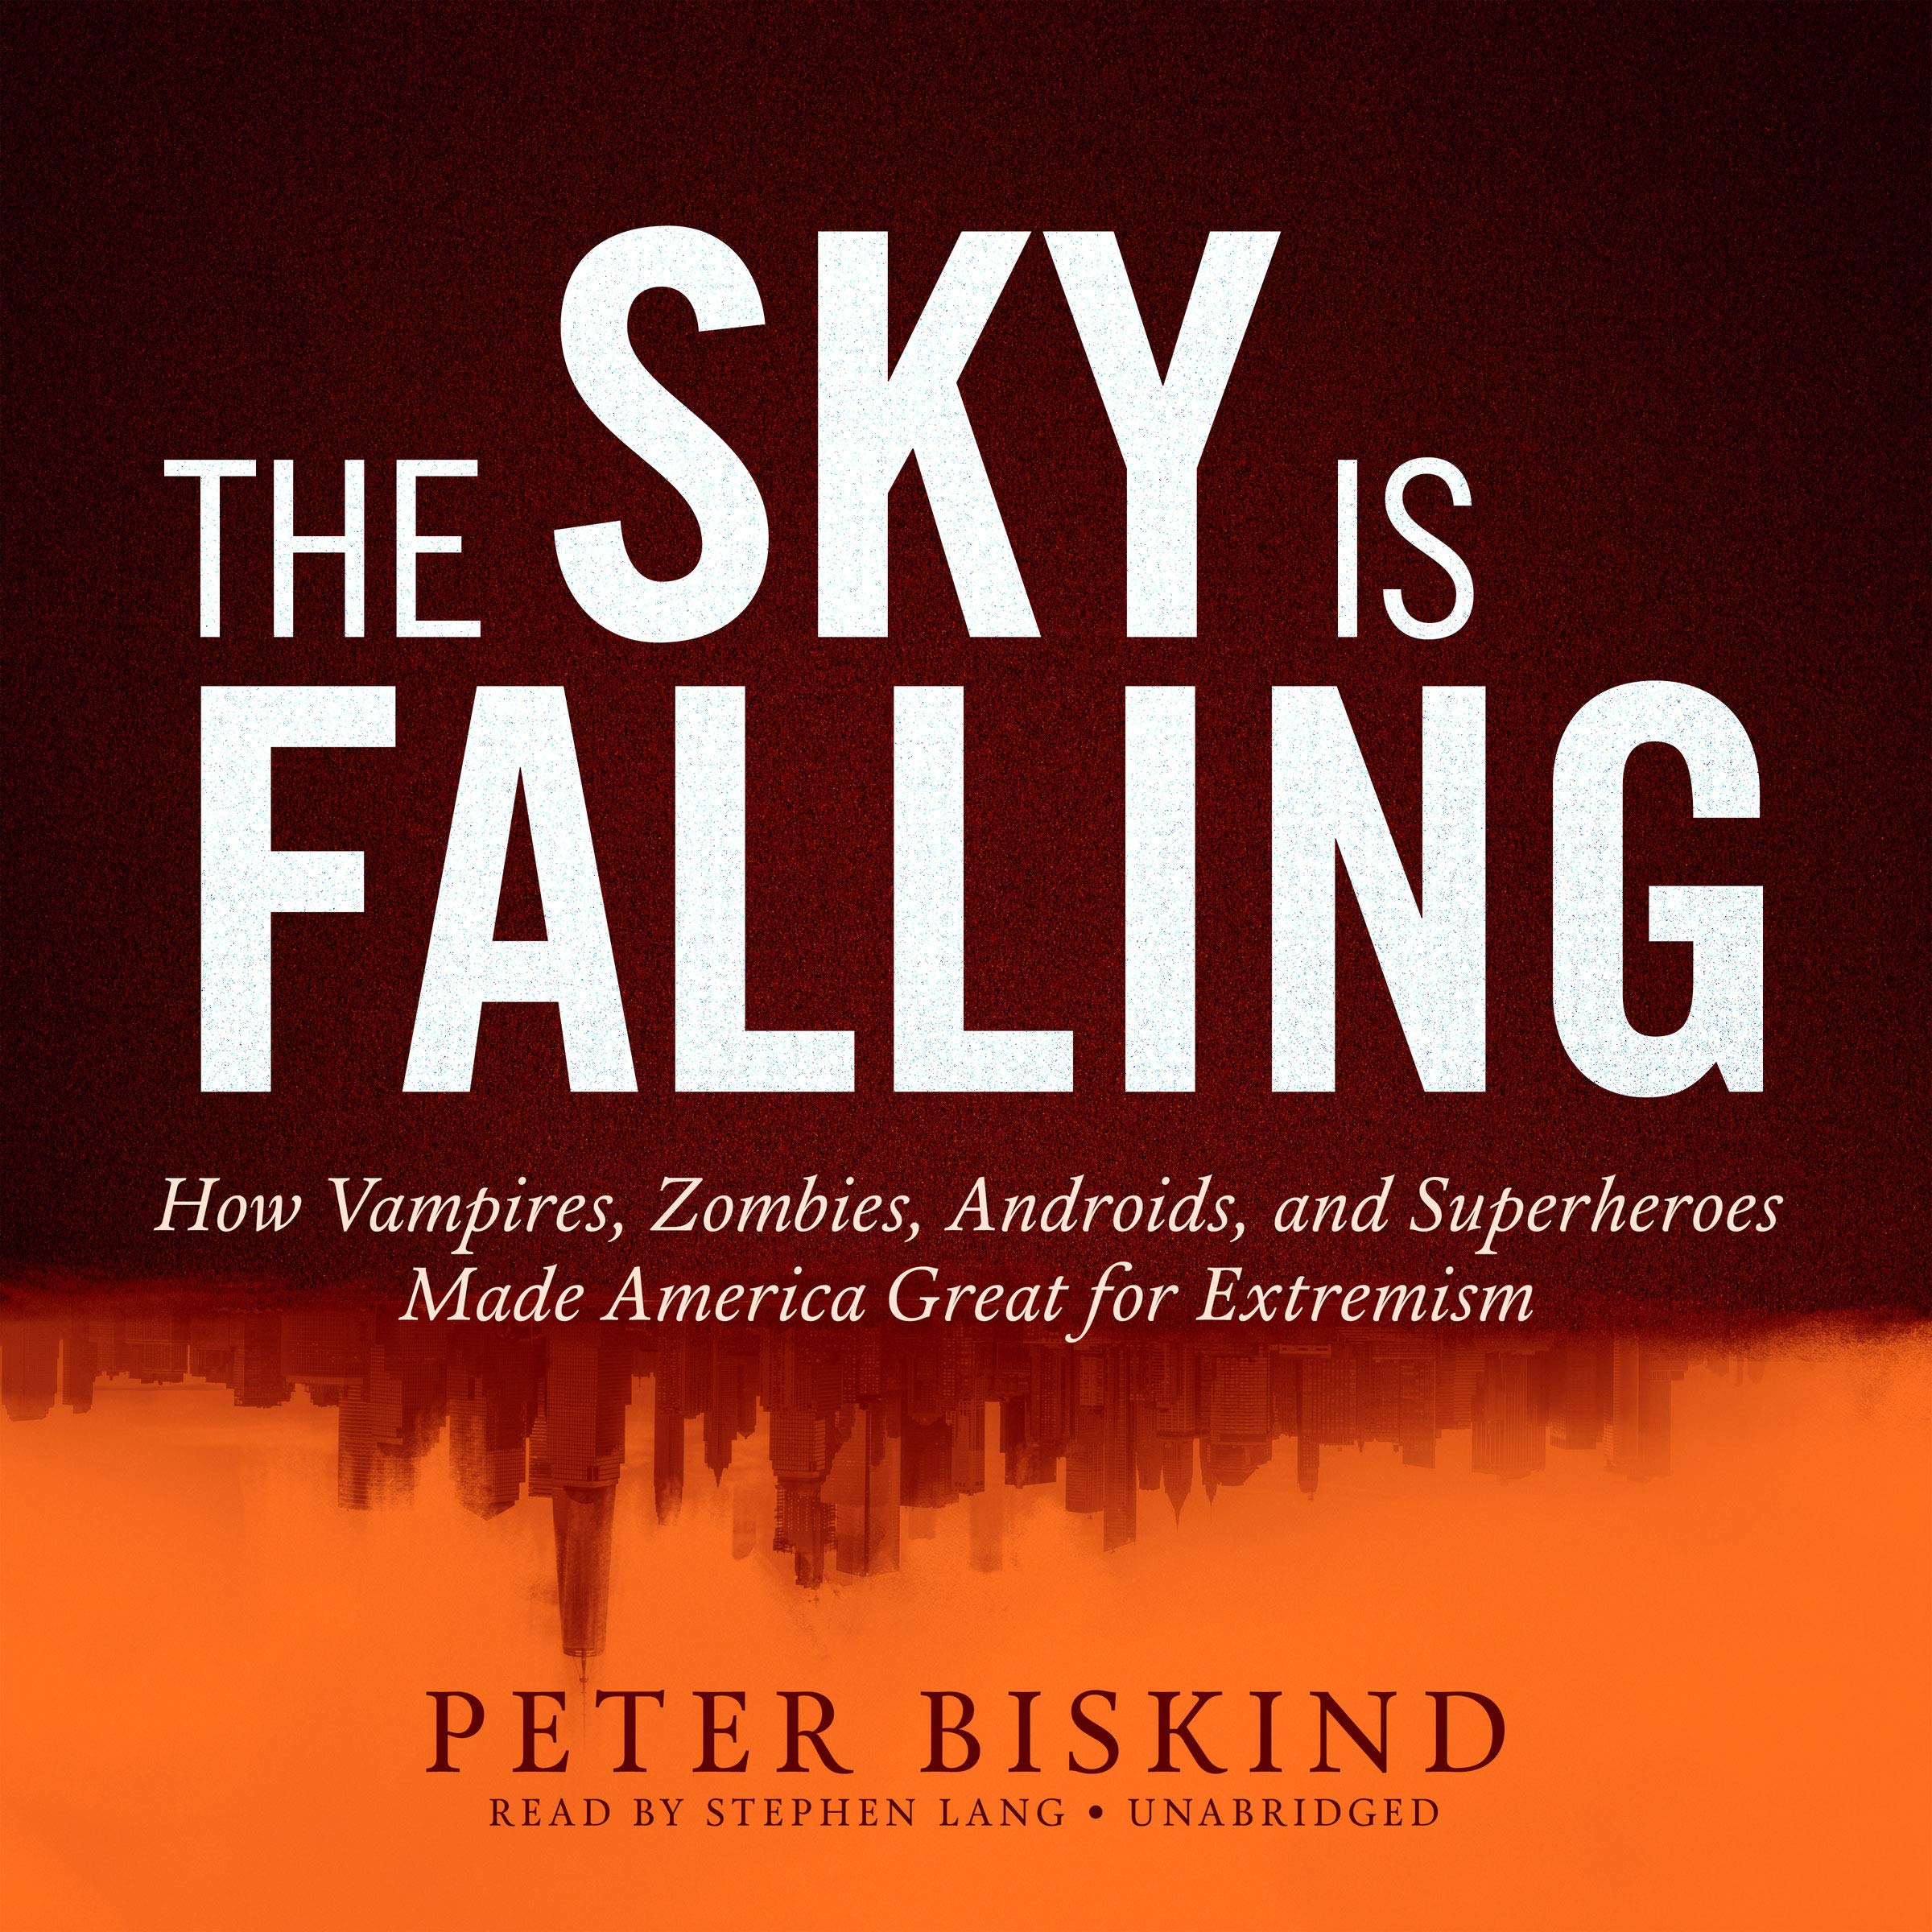 The Sky Is Falling: How Vampires, Zombies, Androids, and Superheroes Made America Great for Extremism